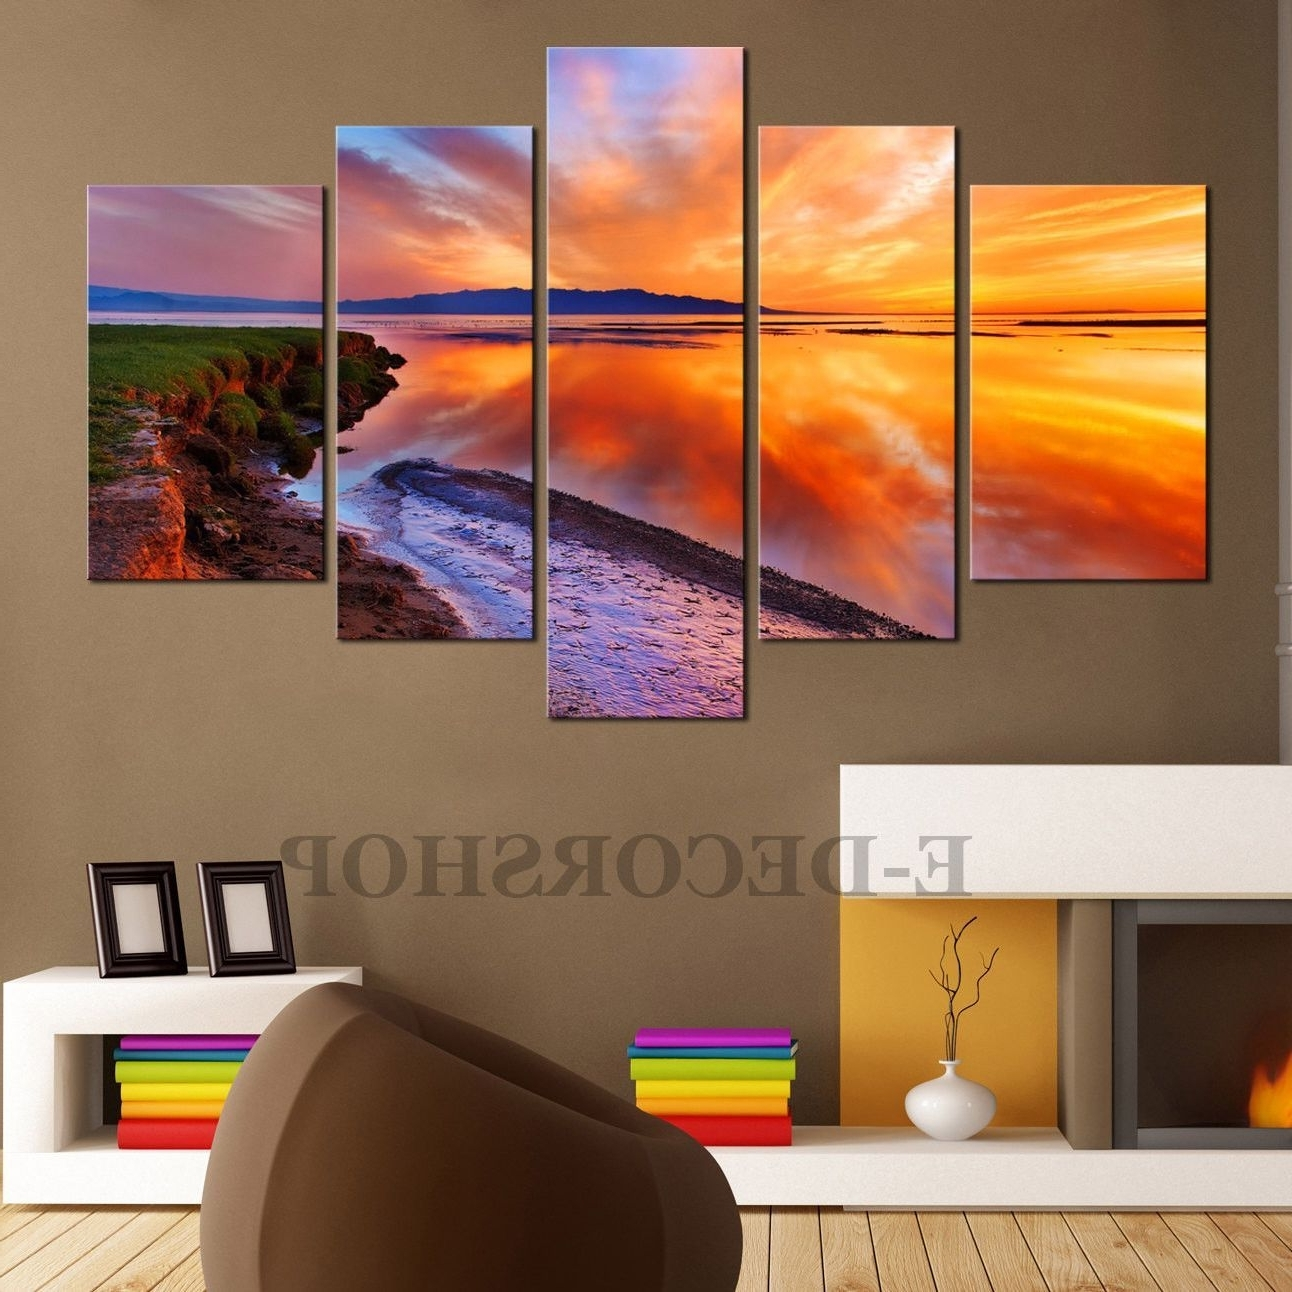 2018 Big W Canvas Wall Art Within Large Canvas Wall Art – Sunset 5 Piece Canvas Art Print For Home (View 1 of 15)